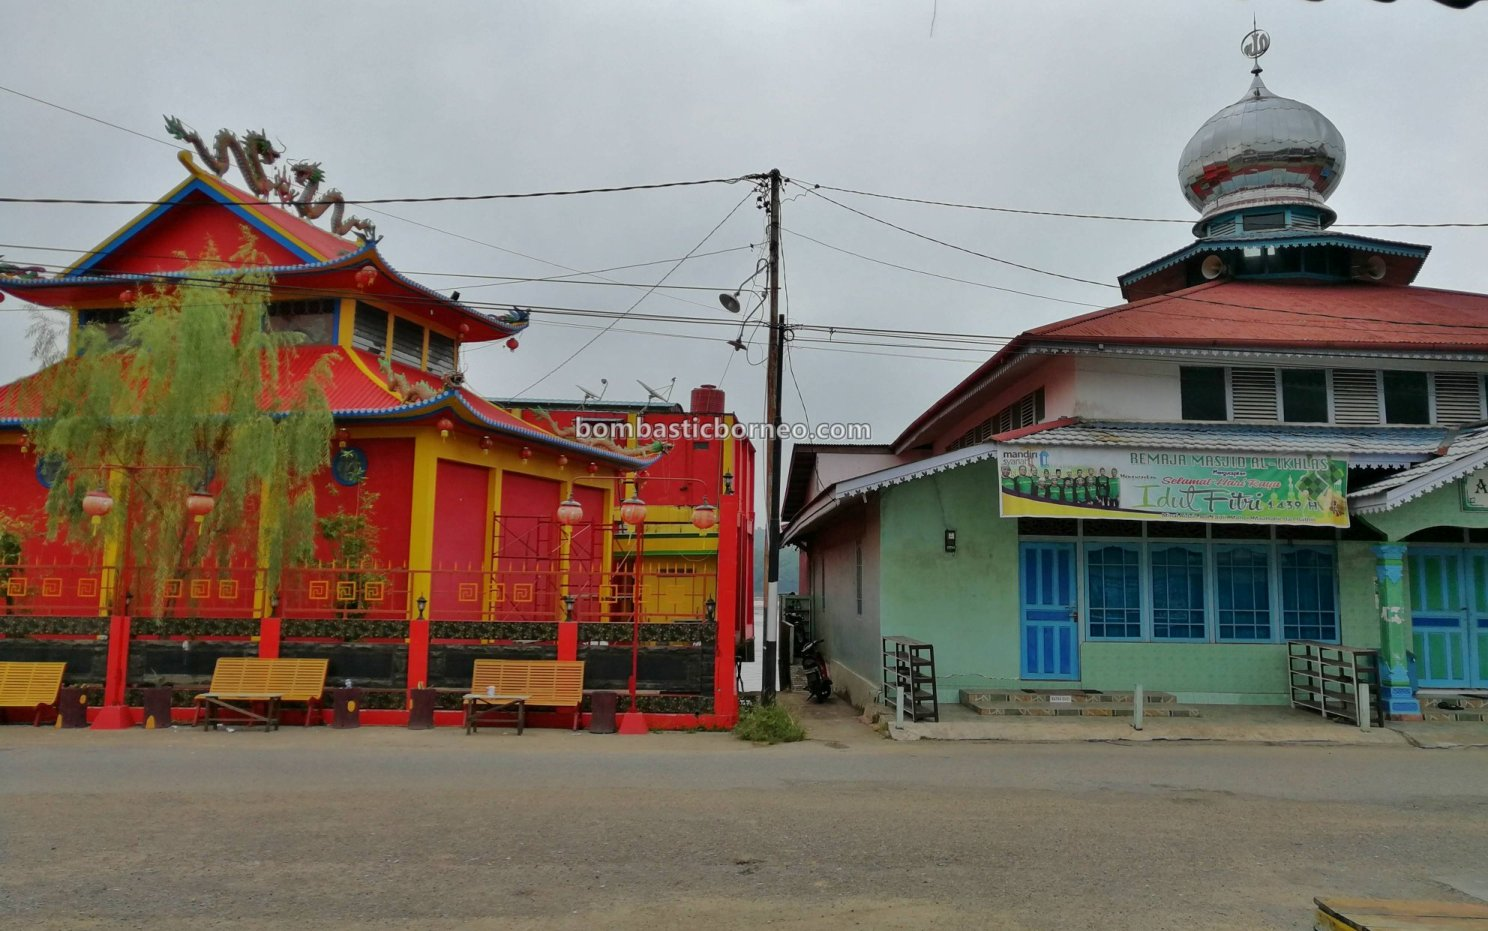 backpackers, destination, exploration, Borneo, Indonesia, Obyek wisata, Pariwisata, Tourism, town, traditional, travel guide, cross border, 上侯婆罗洲游踪, 印尼西加里曼丹